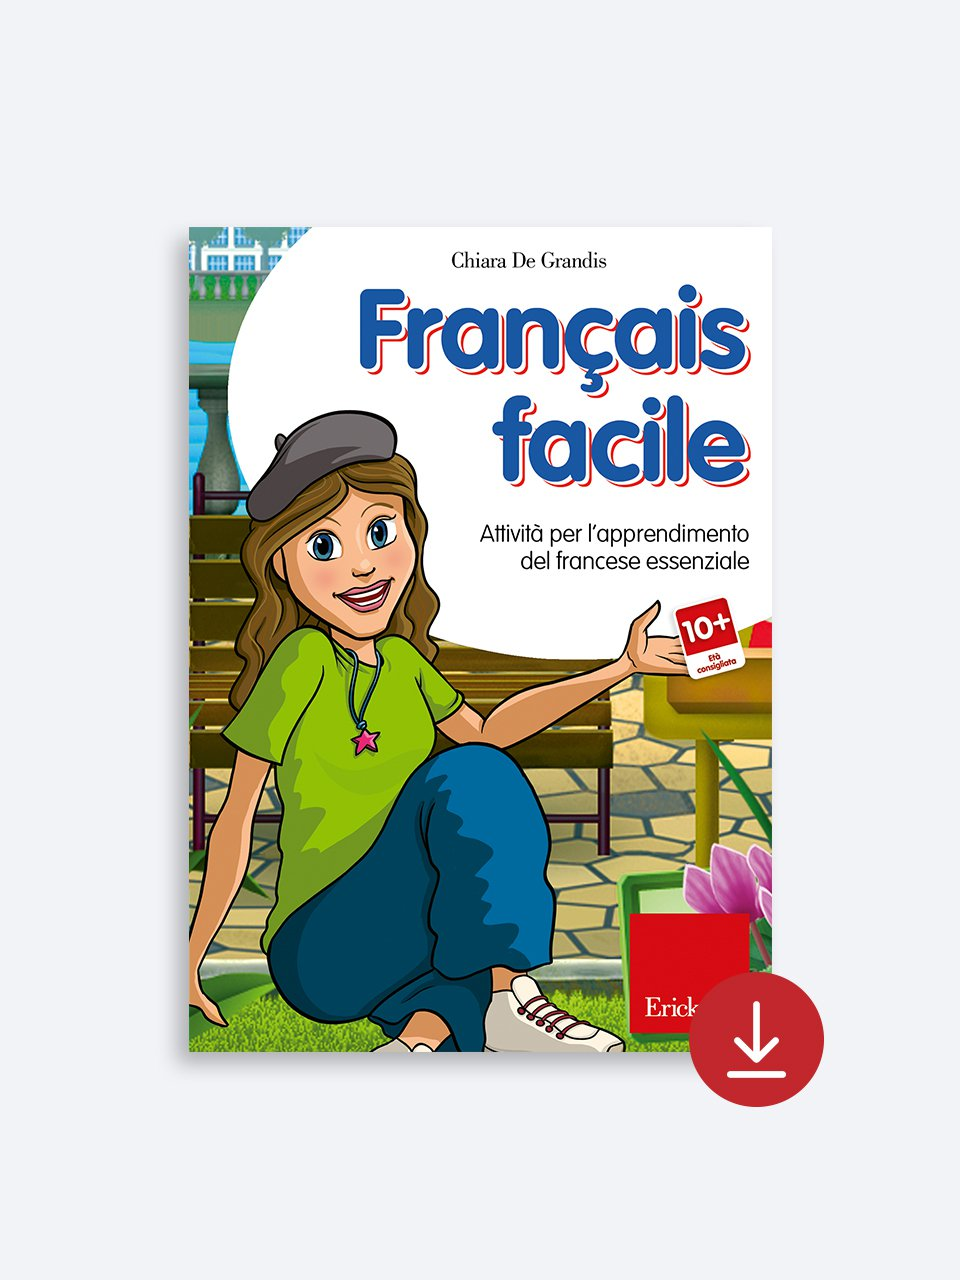 Français facile Download - Erickson Eshop